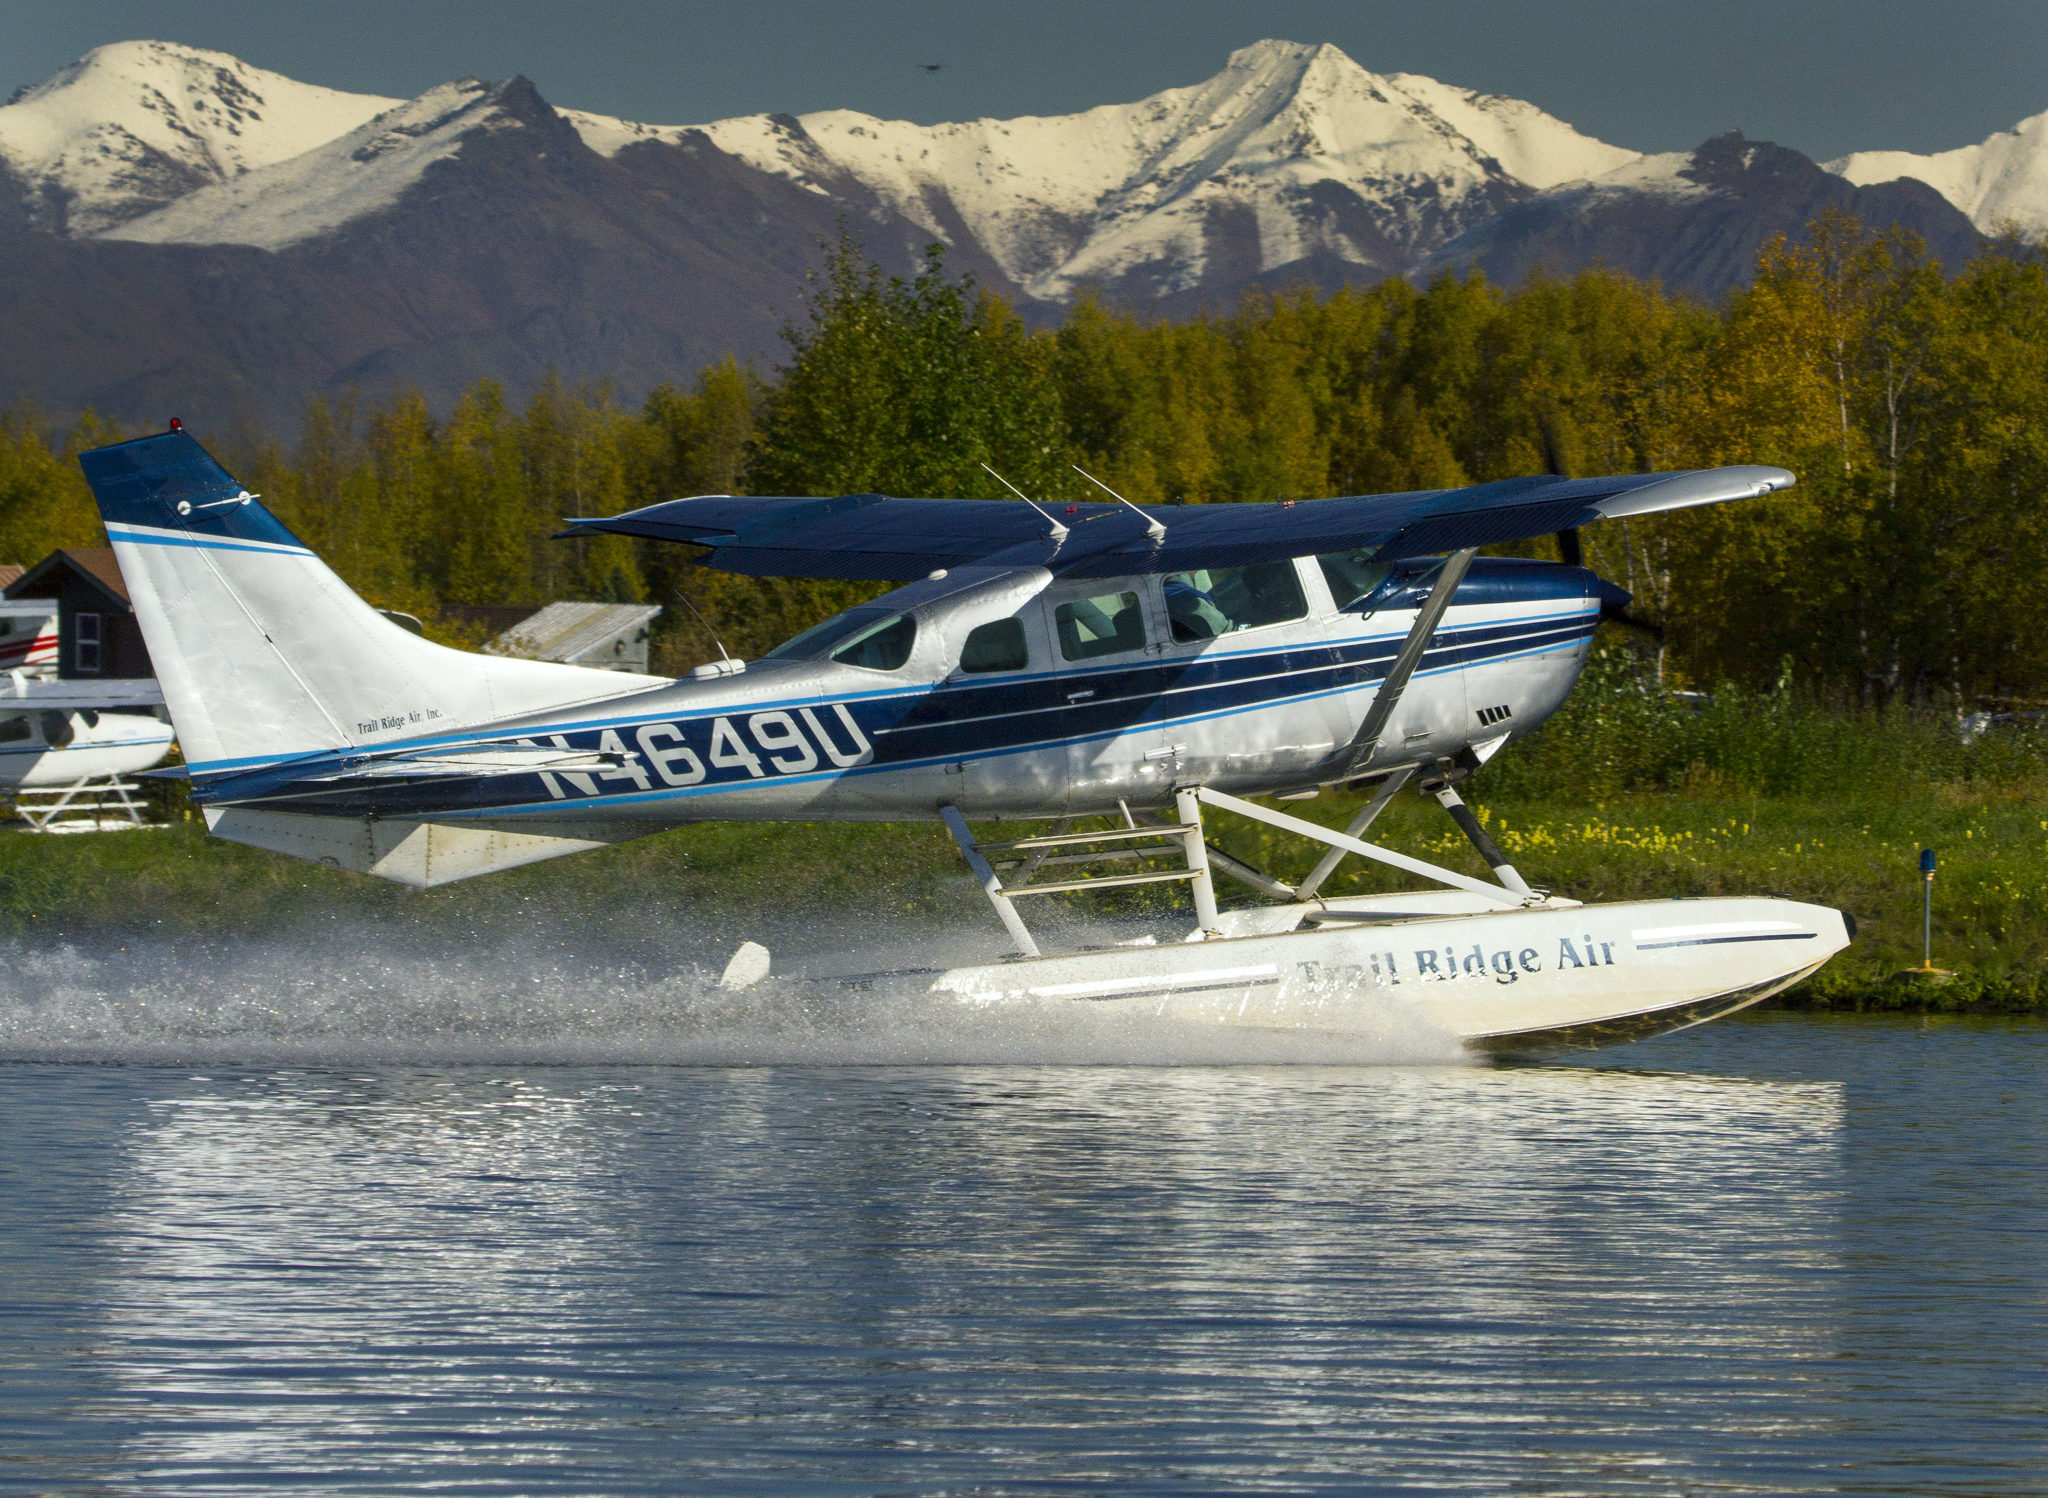 Best Aircraft Photography Alaska | Alaskafoto - Aircraft Portraits & Environmental Portraits